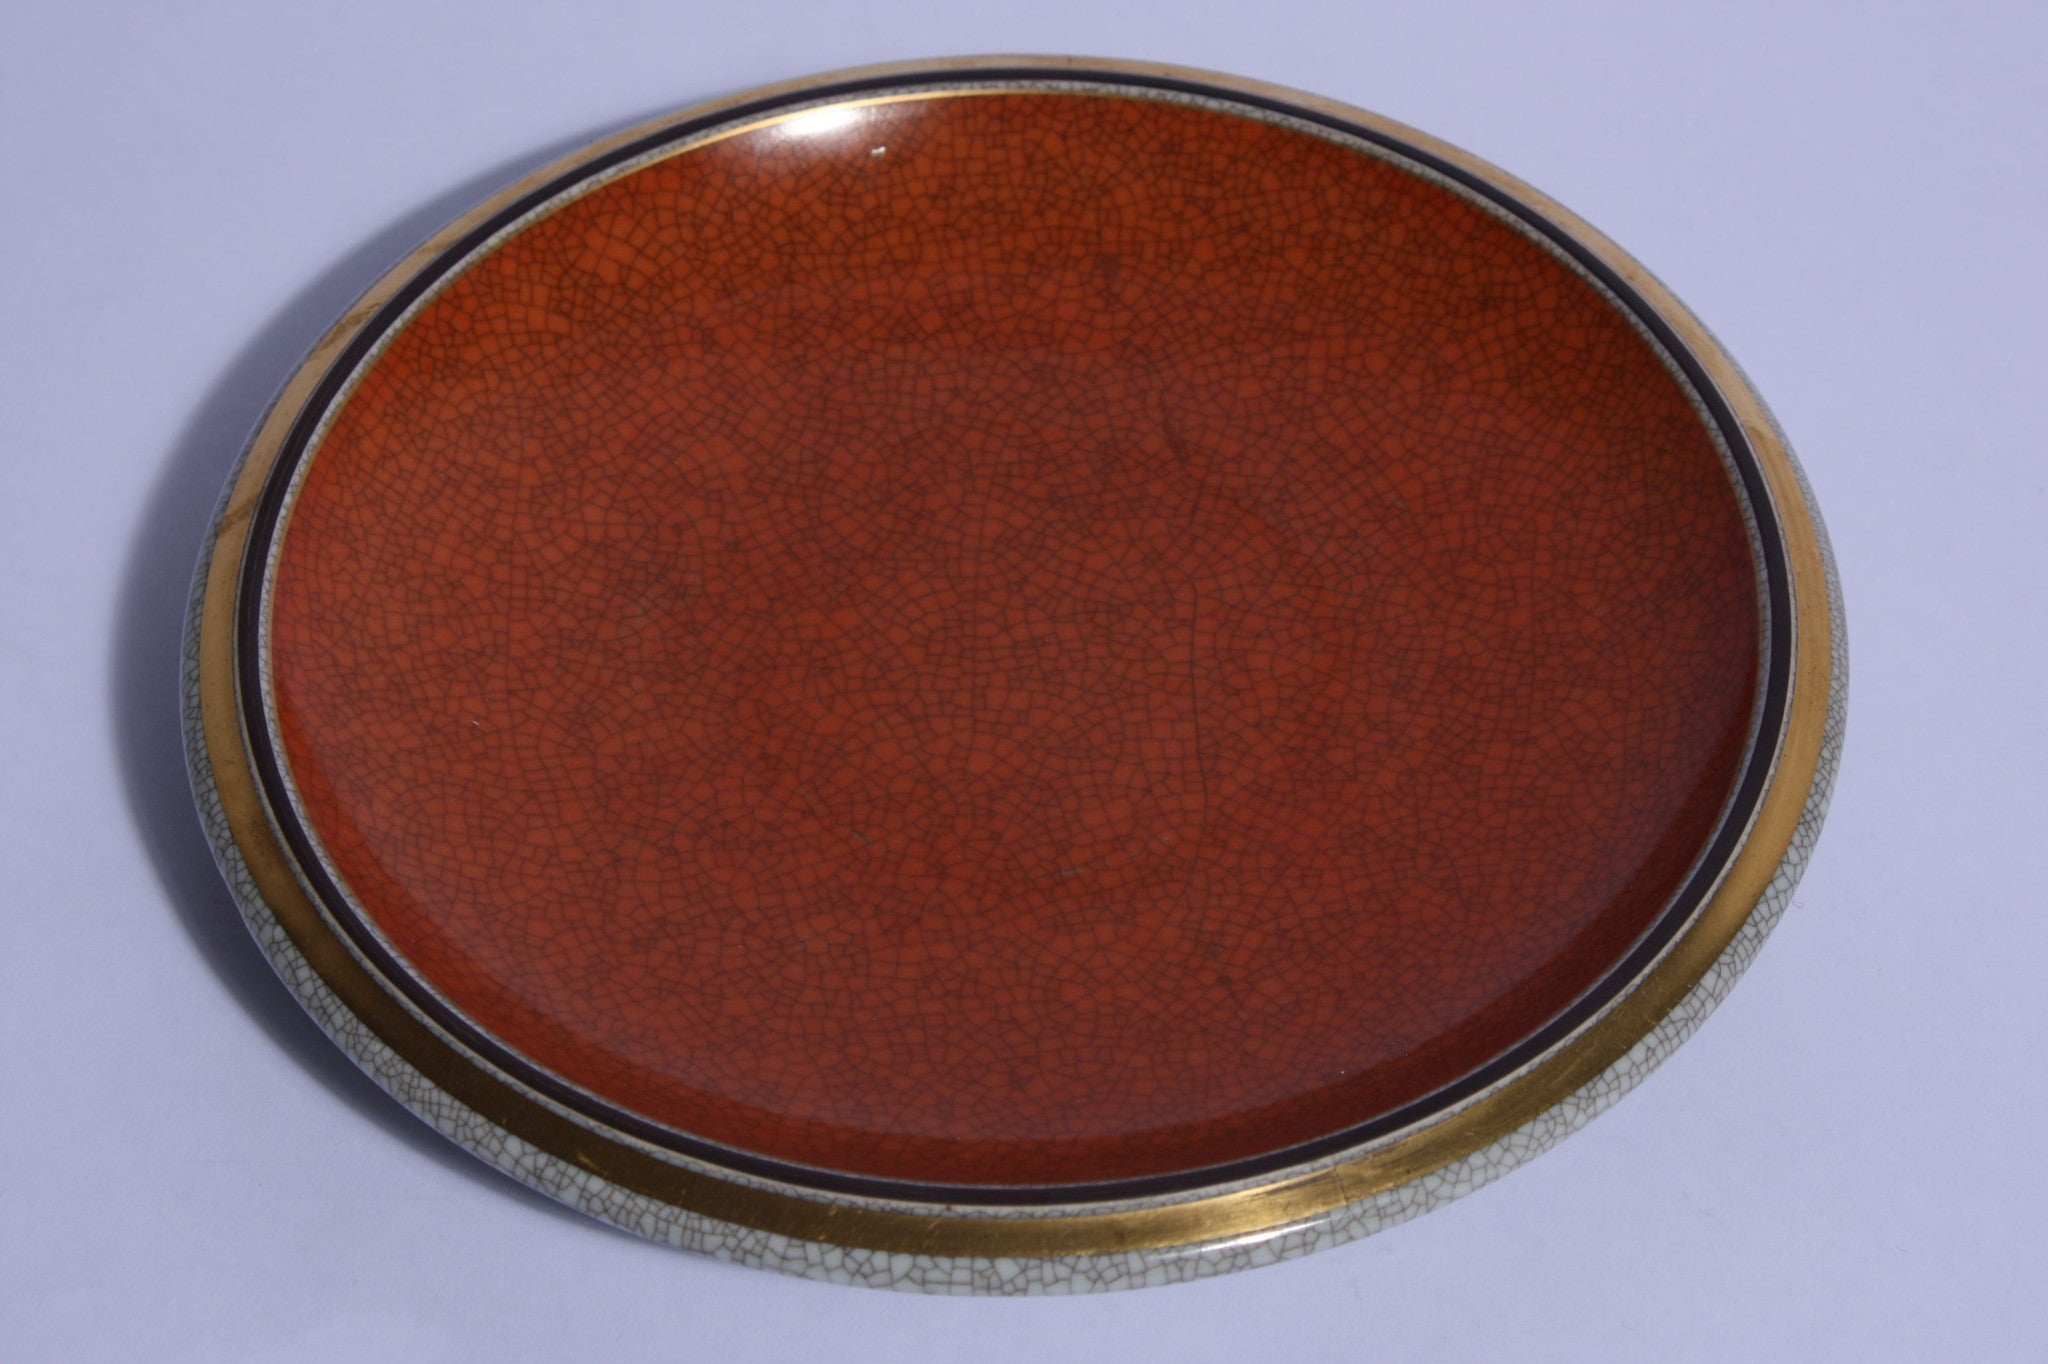 Royal Copenhagen crackleware plate no. 3